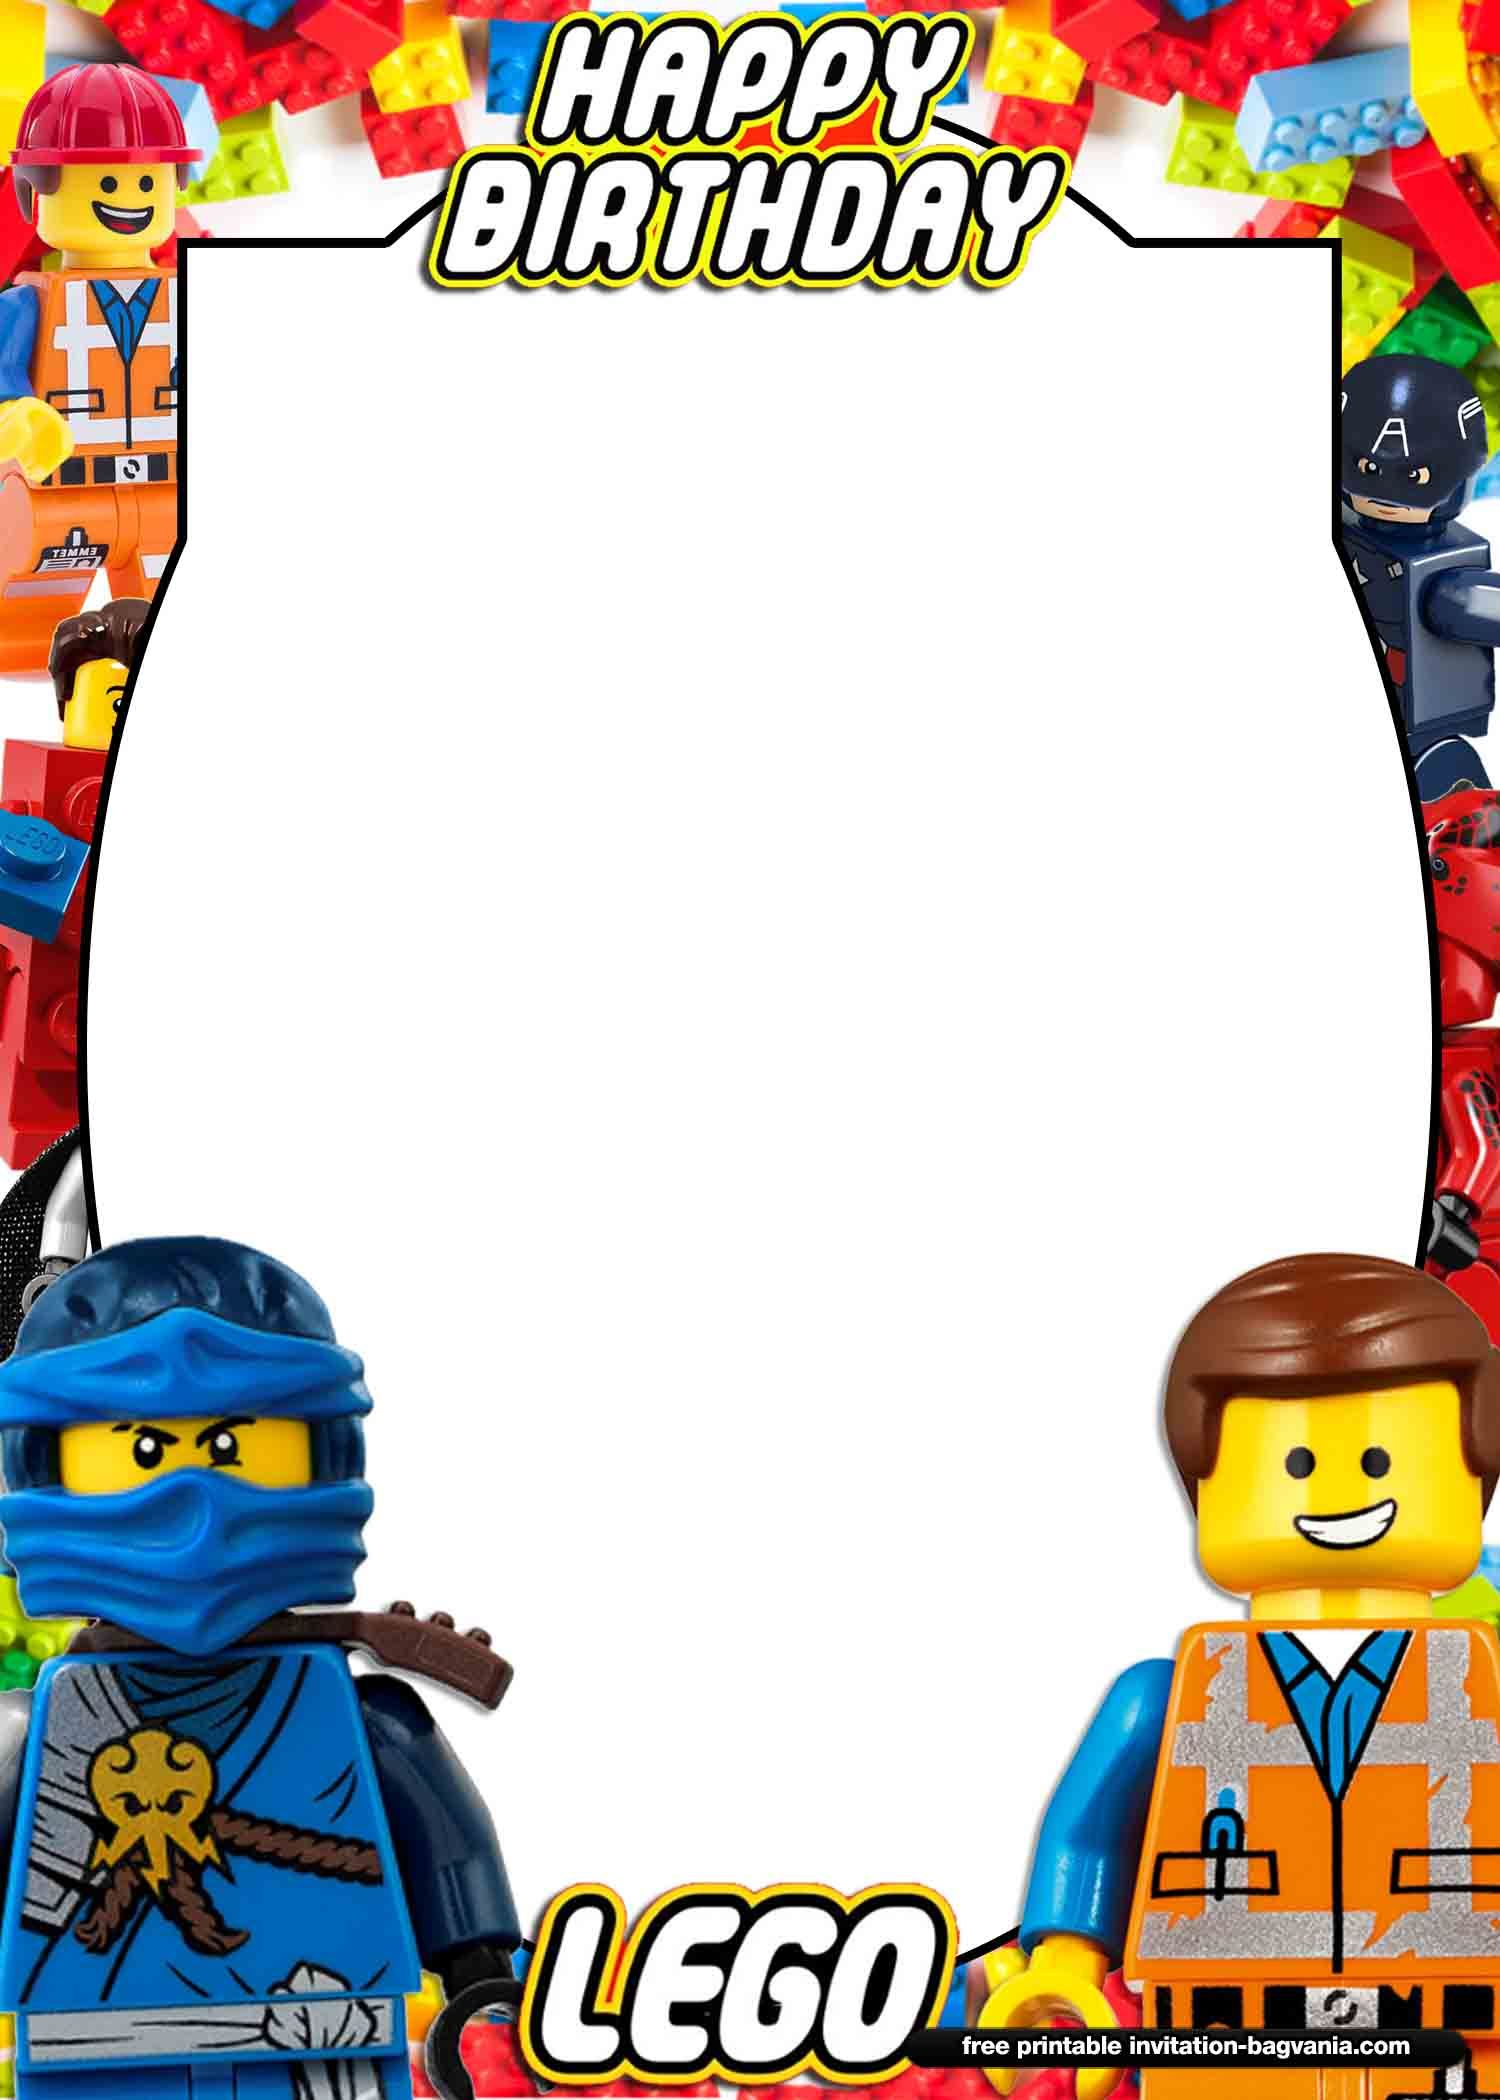 FREE Printable LEGO Birthday Invitation Templates  Lego ninjago